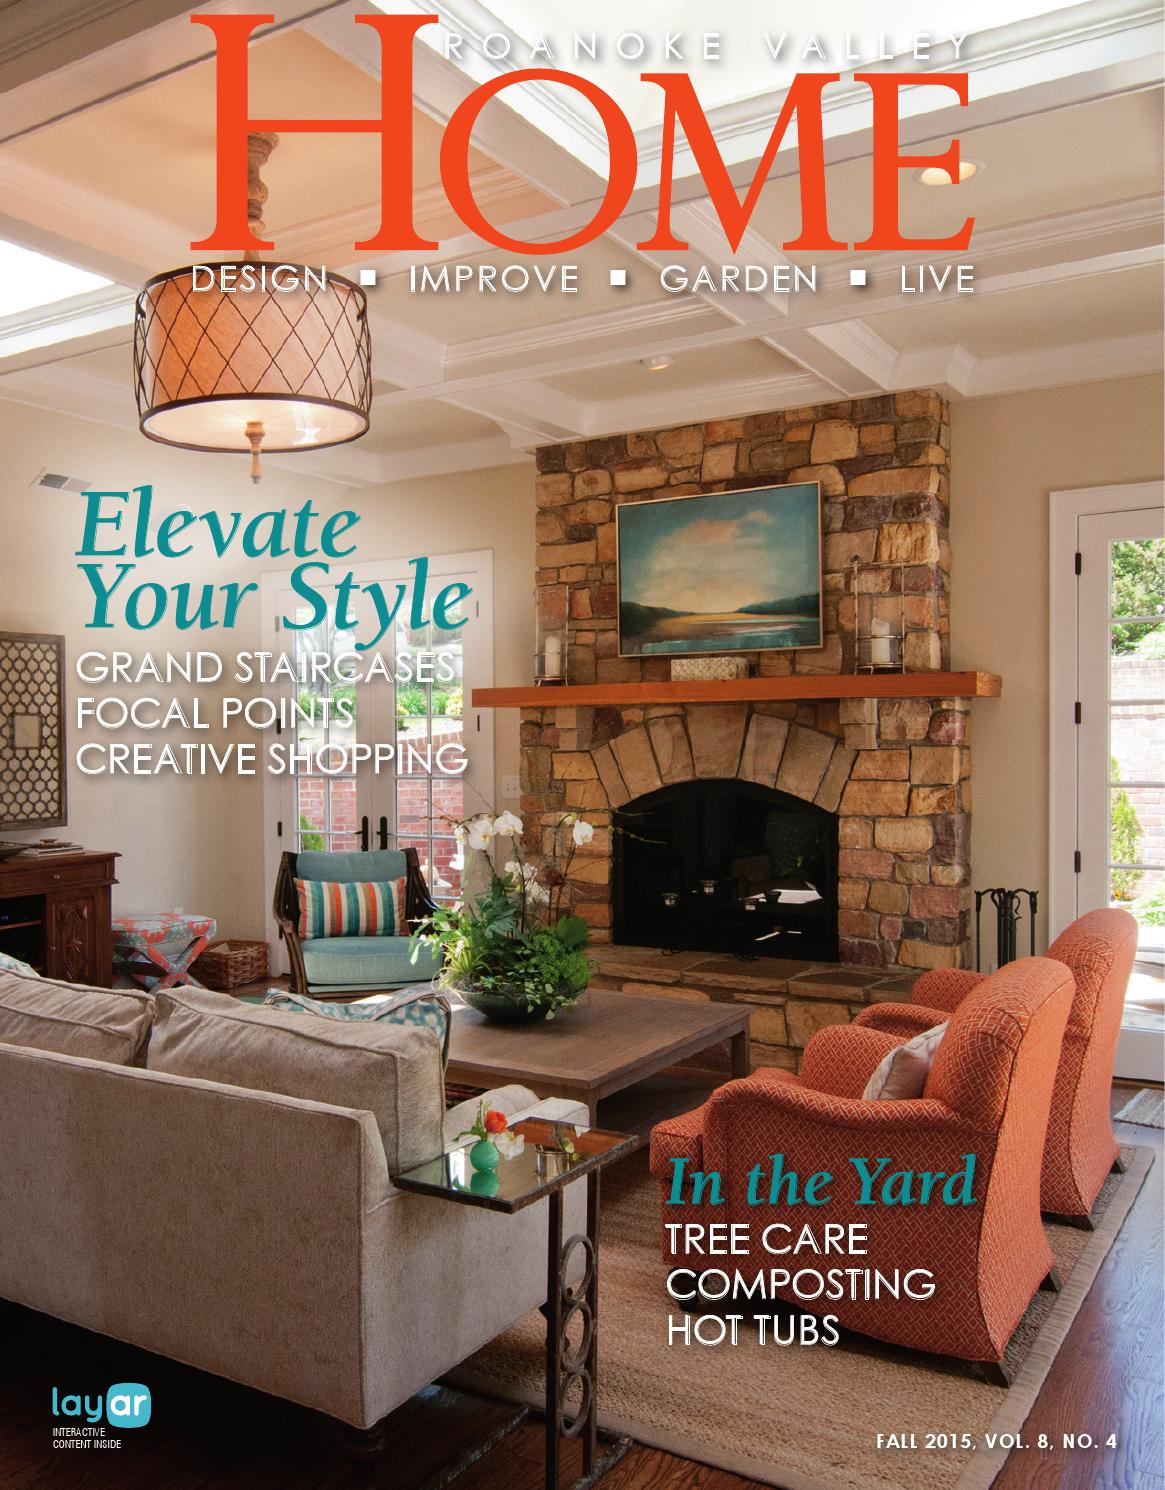 Roanoke Valley HOME Fall 2015 by West Willow Publishing Group - issuu